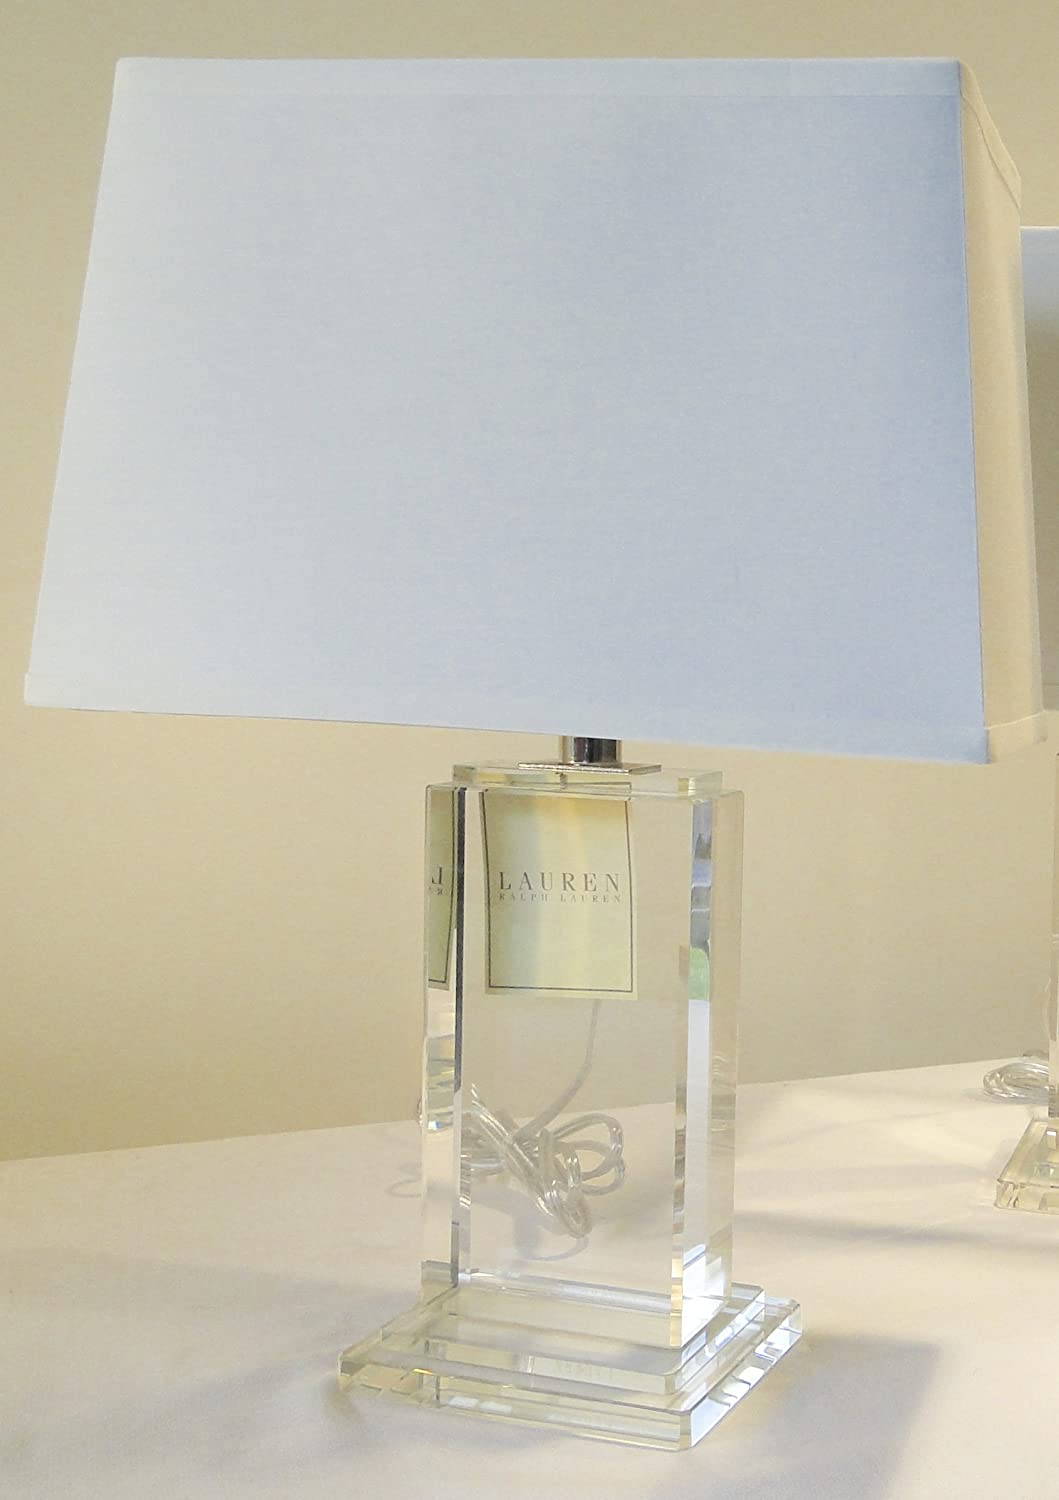 Ralph Lauren Home Rectangular Column Crystal Base With Rectangular White  Linen Shade     Amazon.com